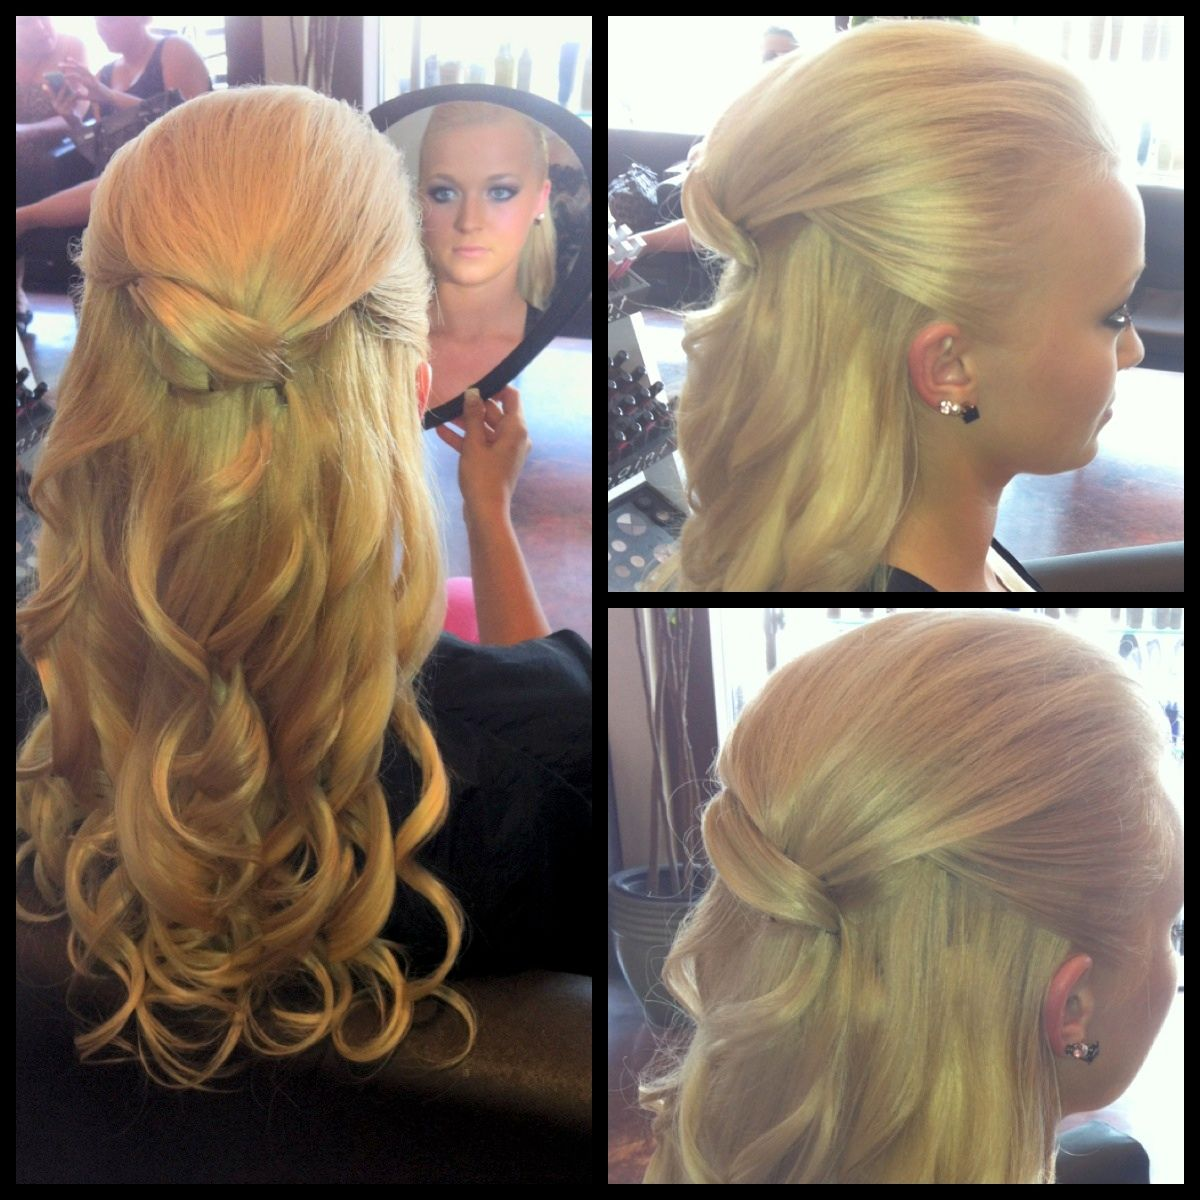 Hairstyle Wedding Extensions: 1/2 Updo Style Thin Blonde Hair With Clip In Hair